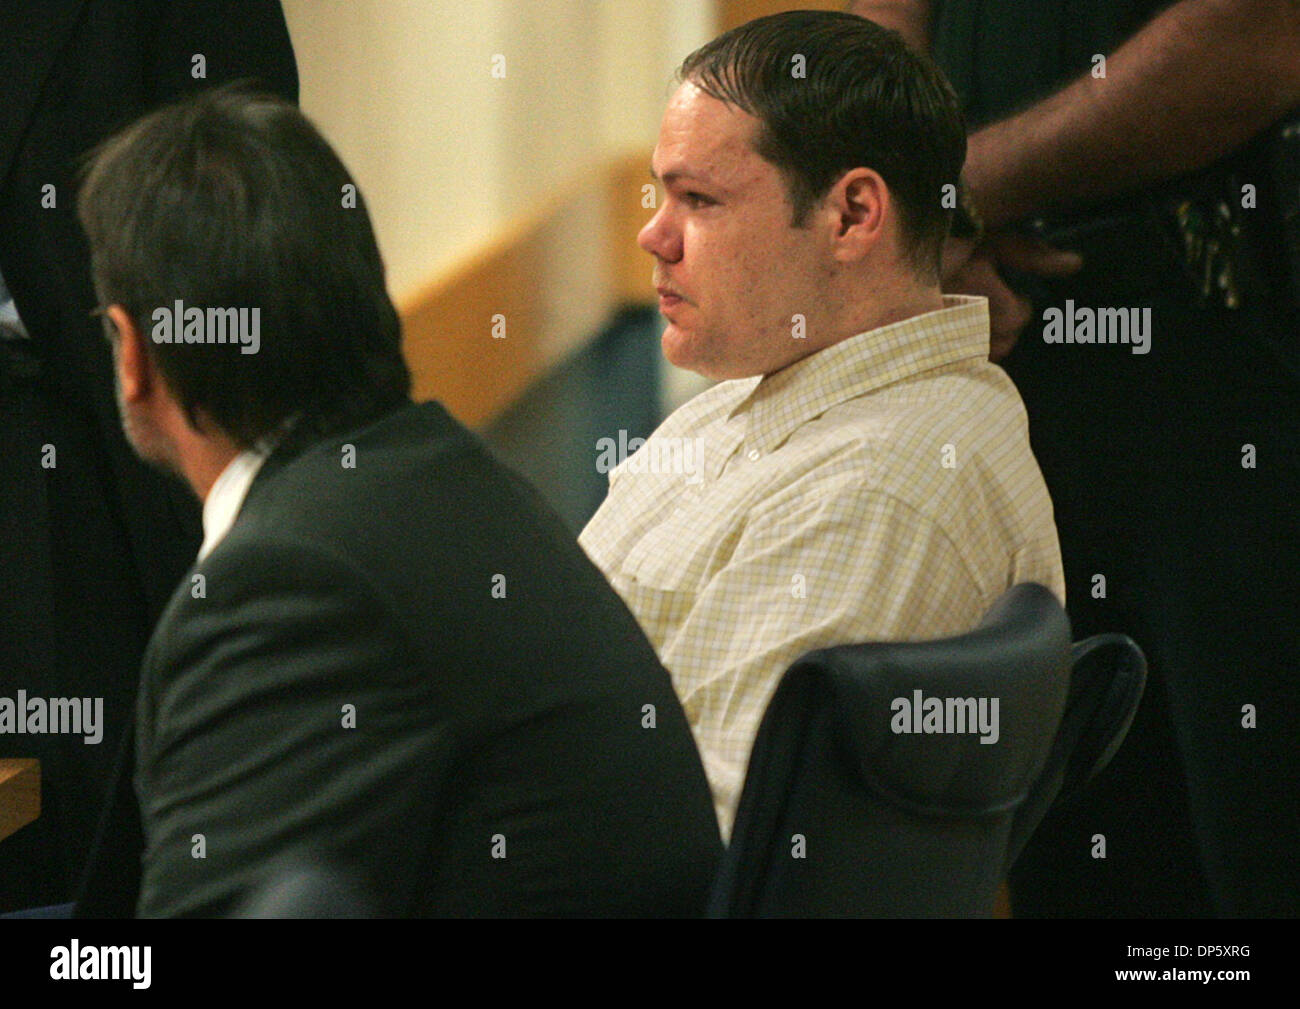 Sep 28, 2006; Stuart, FL, USA; A teary-eyed EUGENE MCWATTERS sits at the defense table after guilty verdicts were returned by a jury in his triple murder trial at the Martin County Courthouse thursday morning.  Mandatory Credit: Photo by David Spencer/Palm Beach Post/ZUMA Press. (©) Copyright 2006 by Palm Beach Post - Stock Image